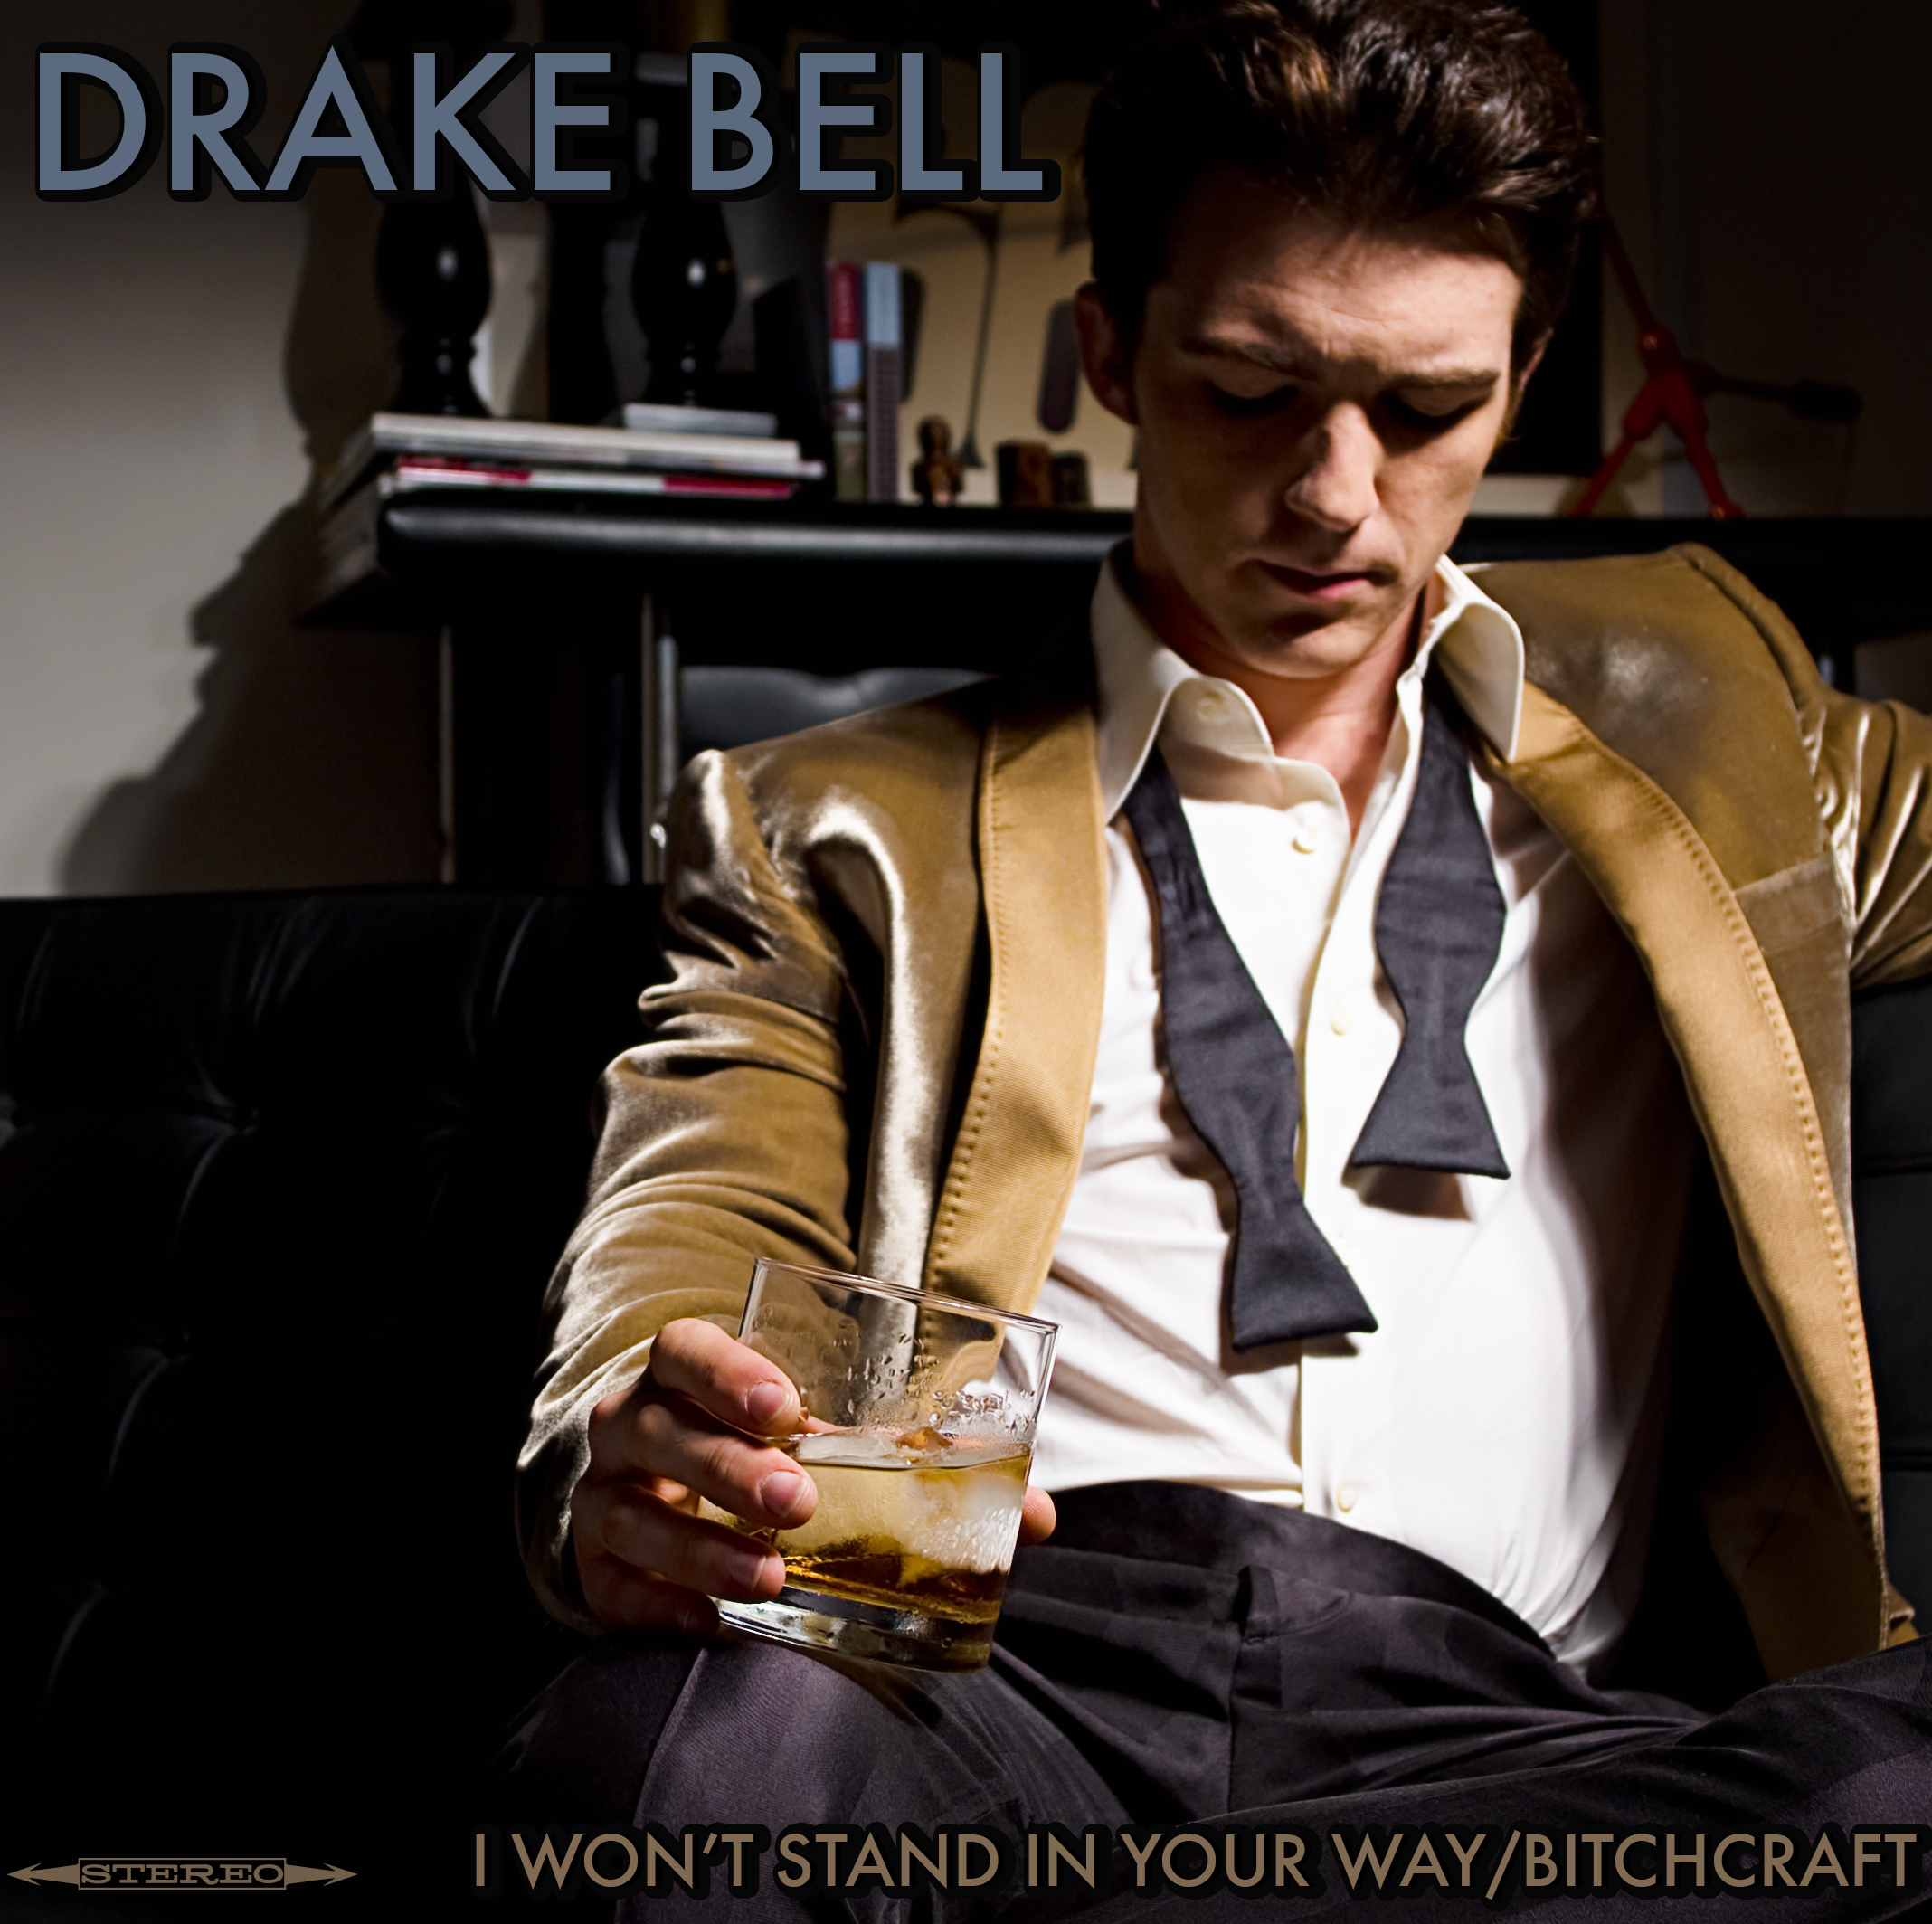 Bell drake i won t stand in your way bitchcraft 9 00 drake bell i won